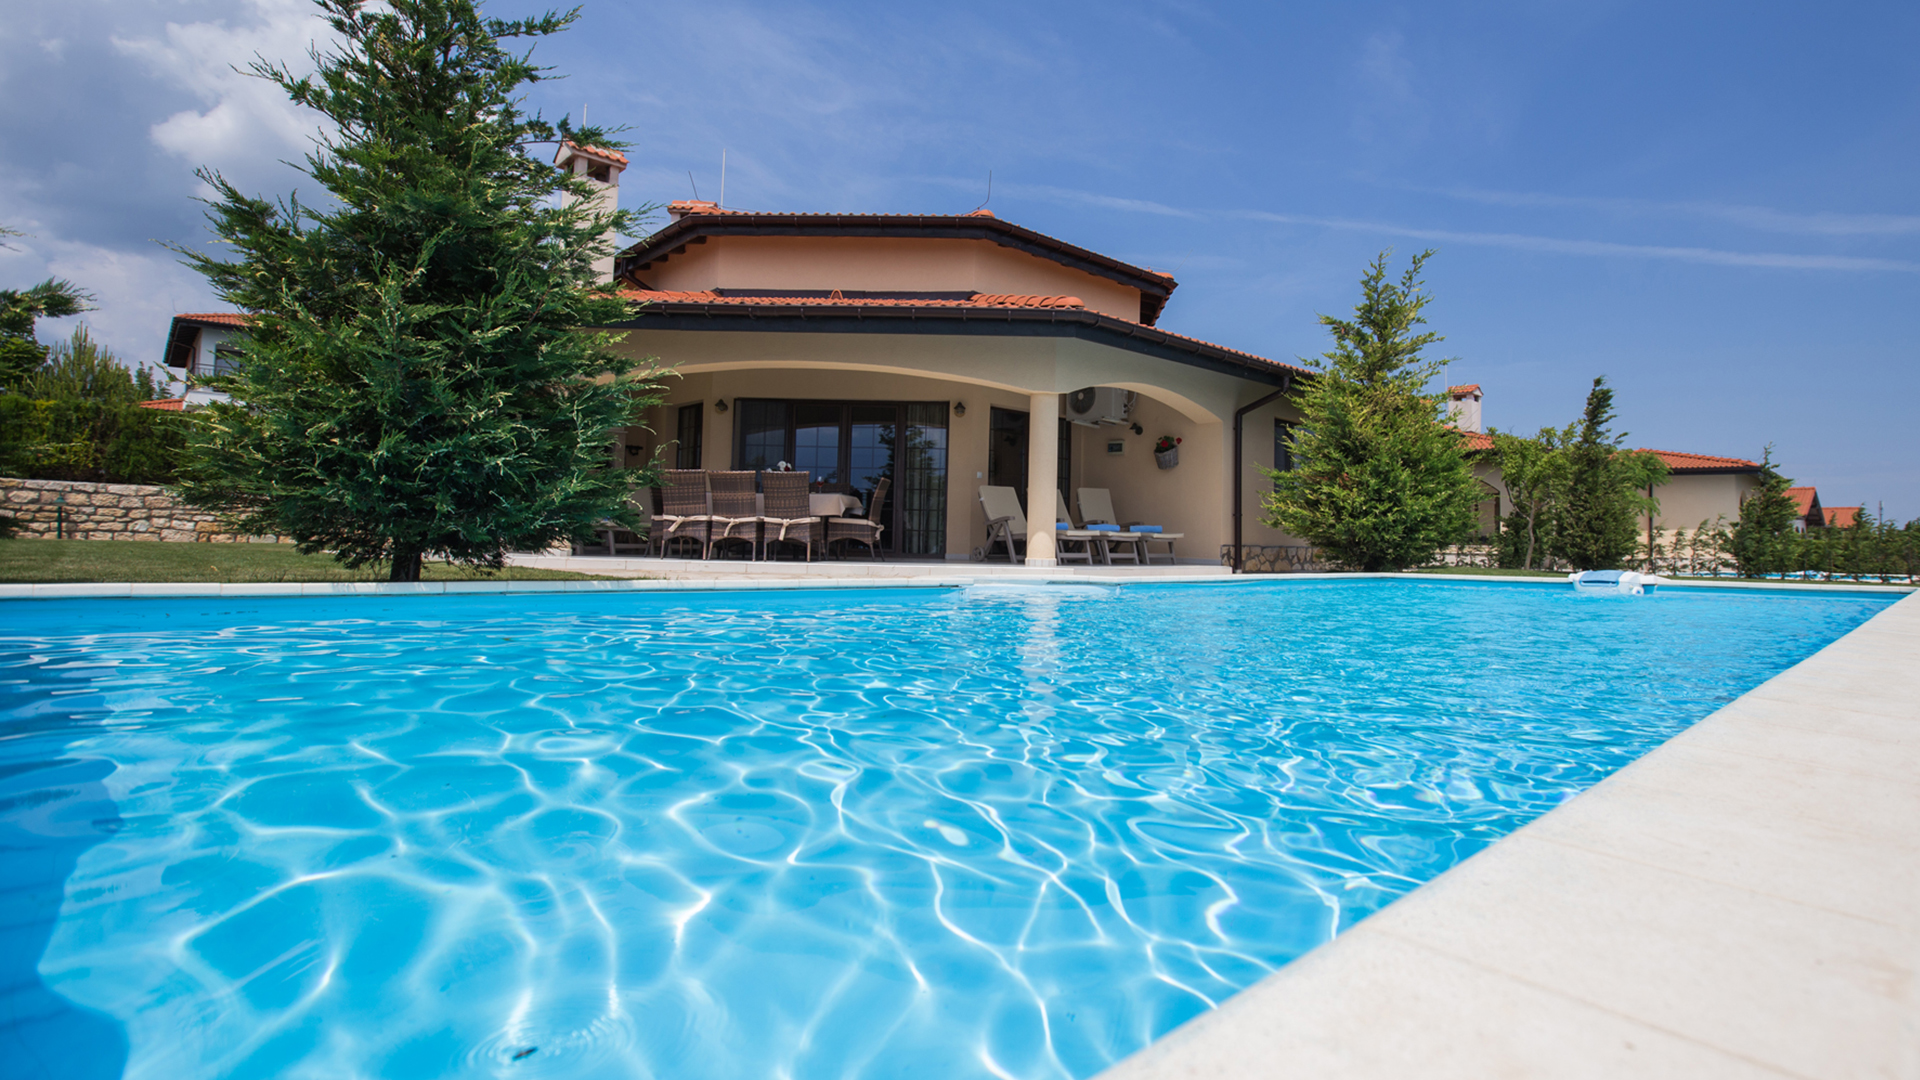 Pool Kaufen Real Holiday Vacation In Bulgaria Luxury Villas Blacksearama Golf